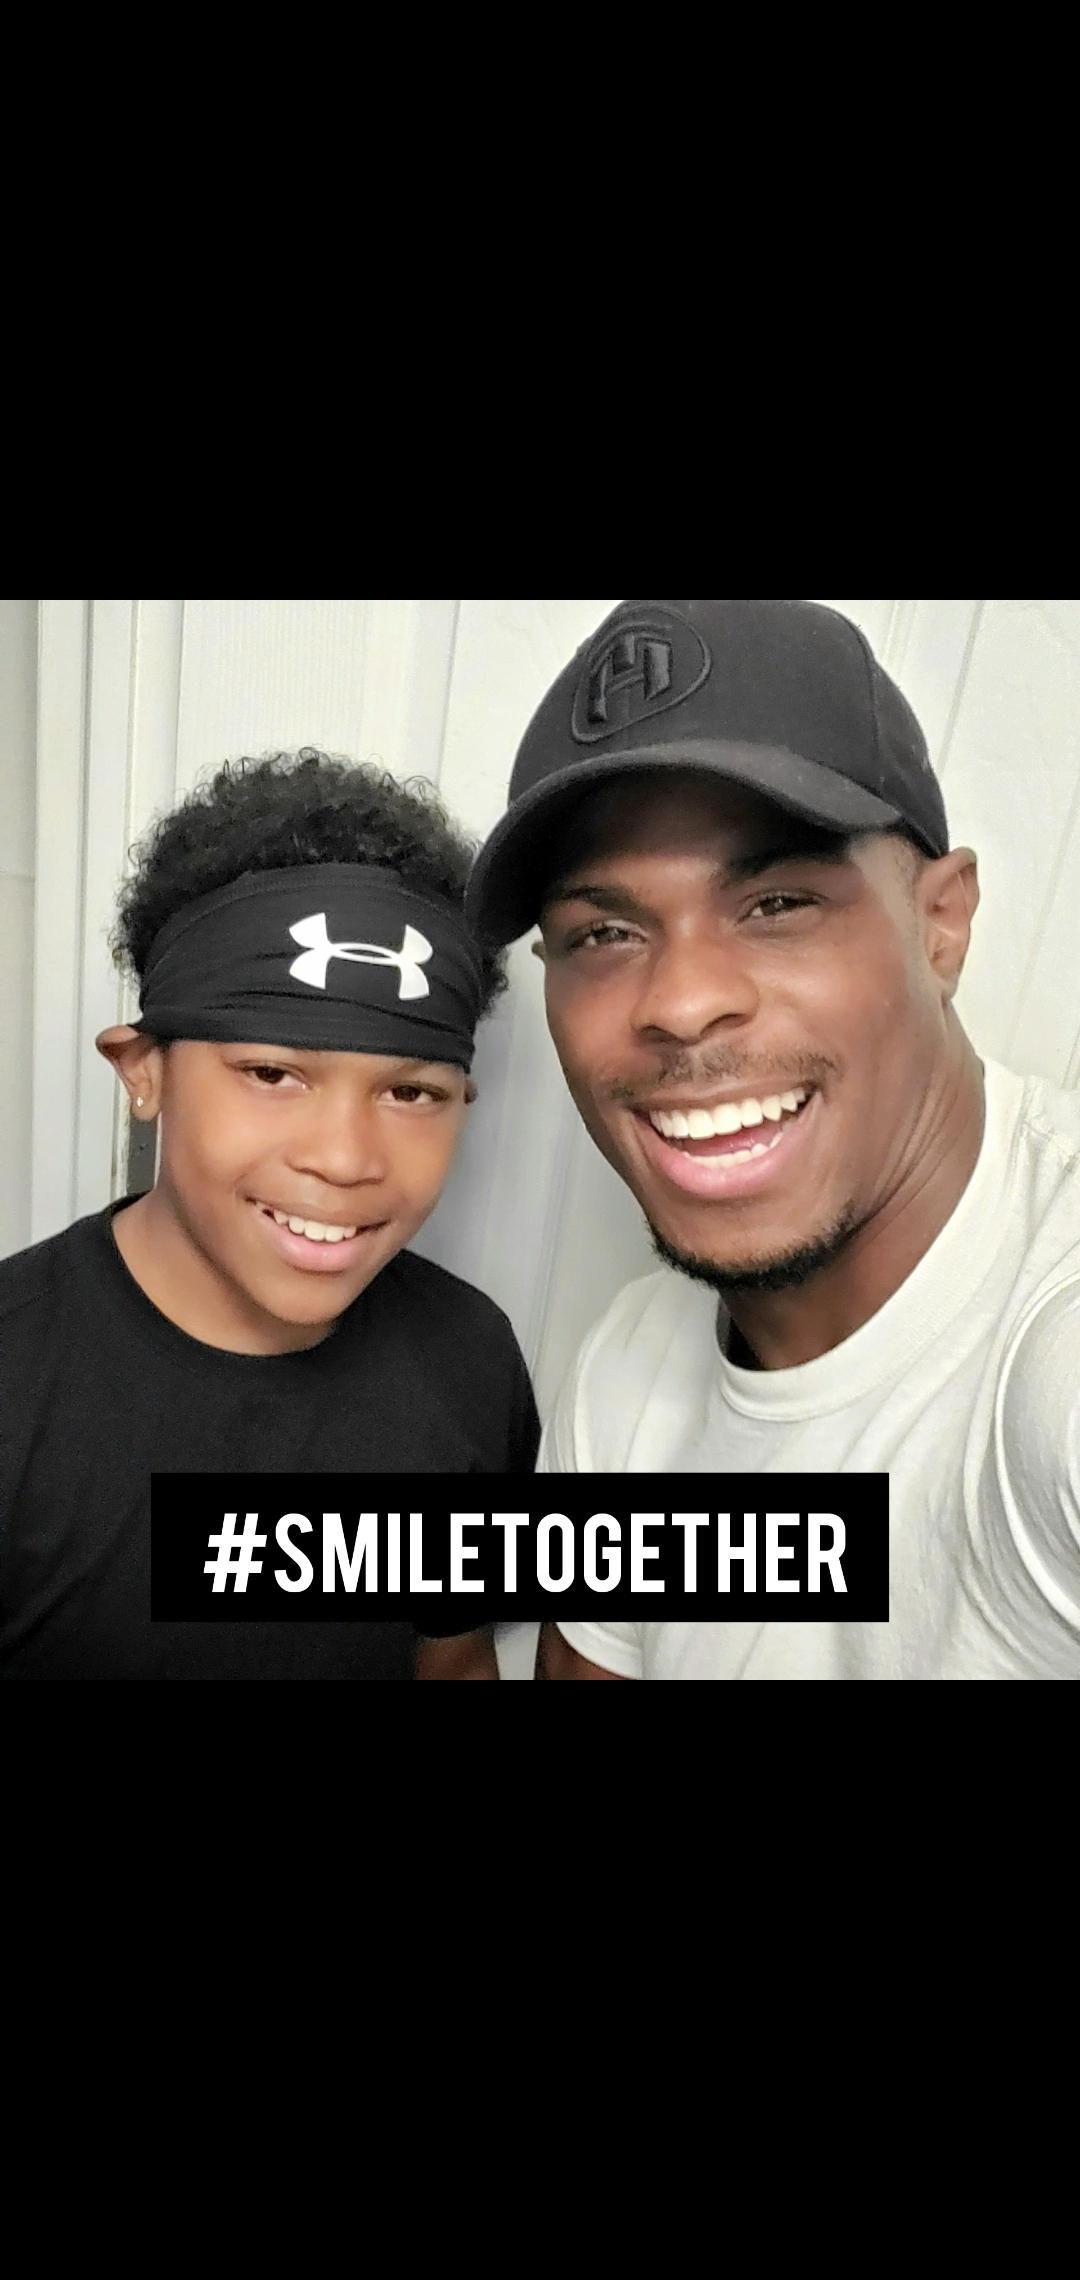 #SMILETOGETHER IN SUPPORT OF THE FIGHT AGAINST COVID-19